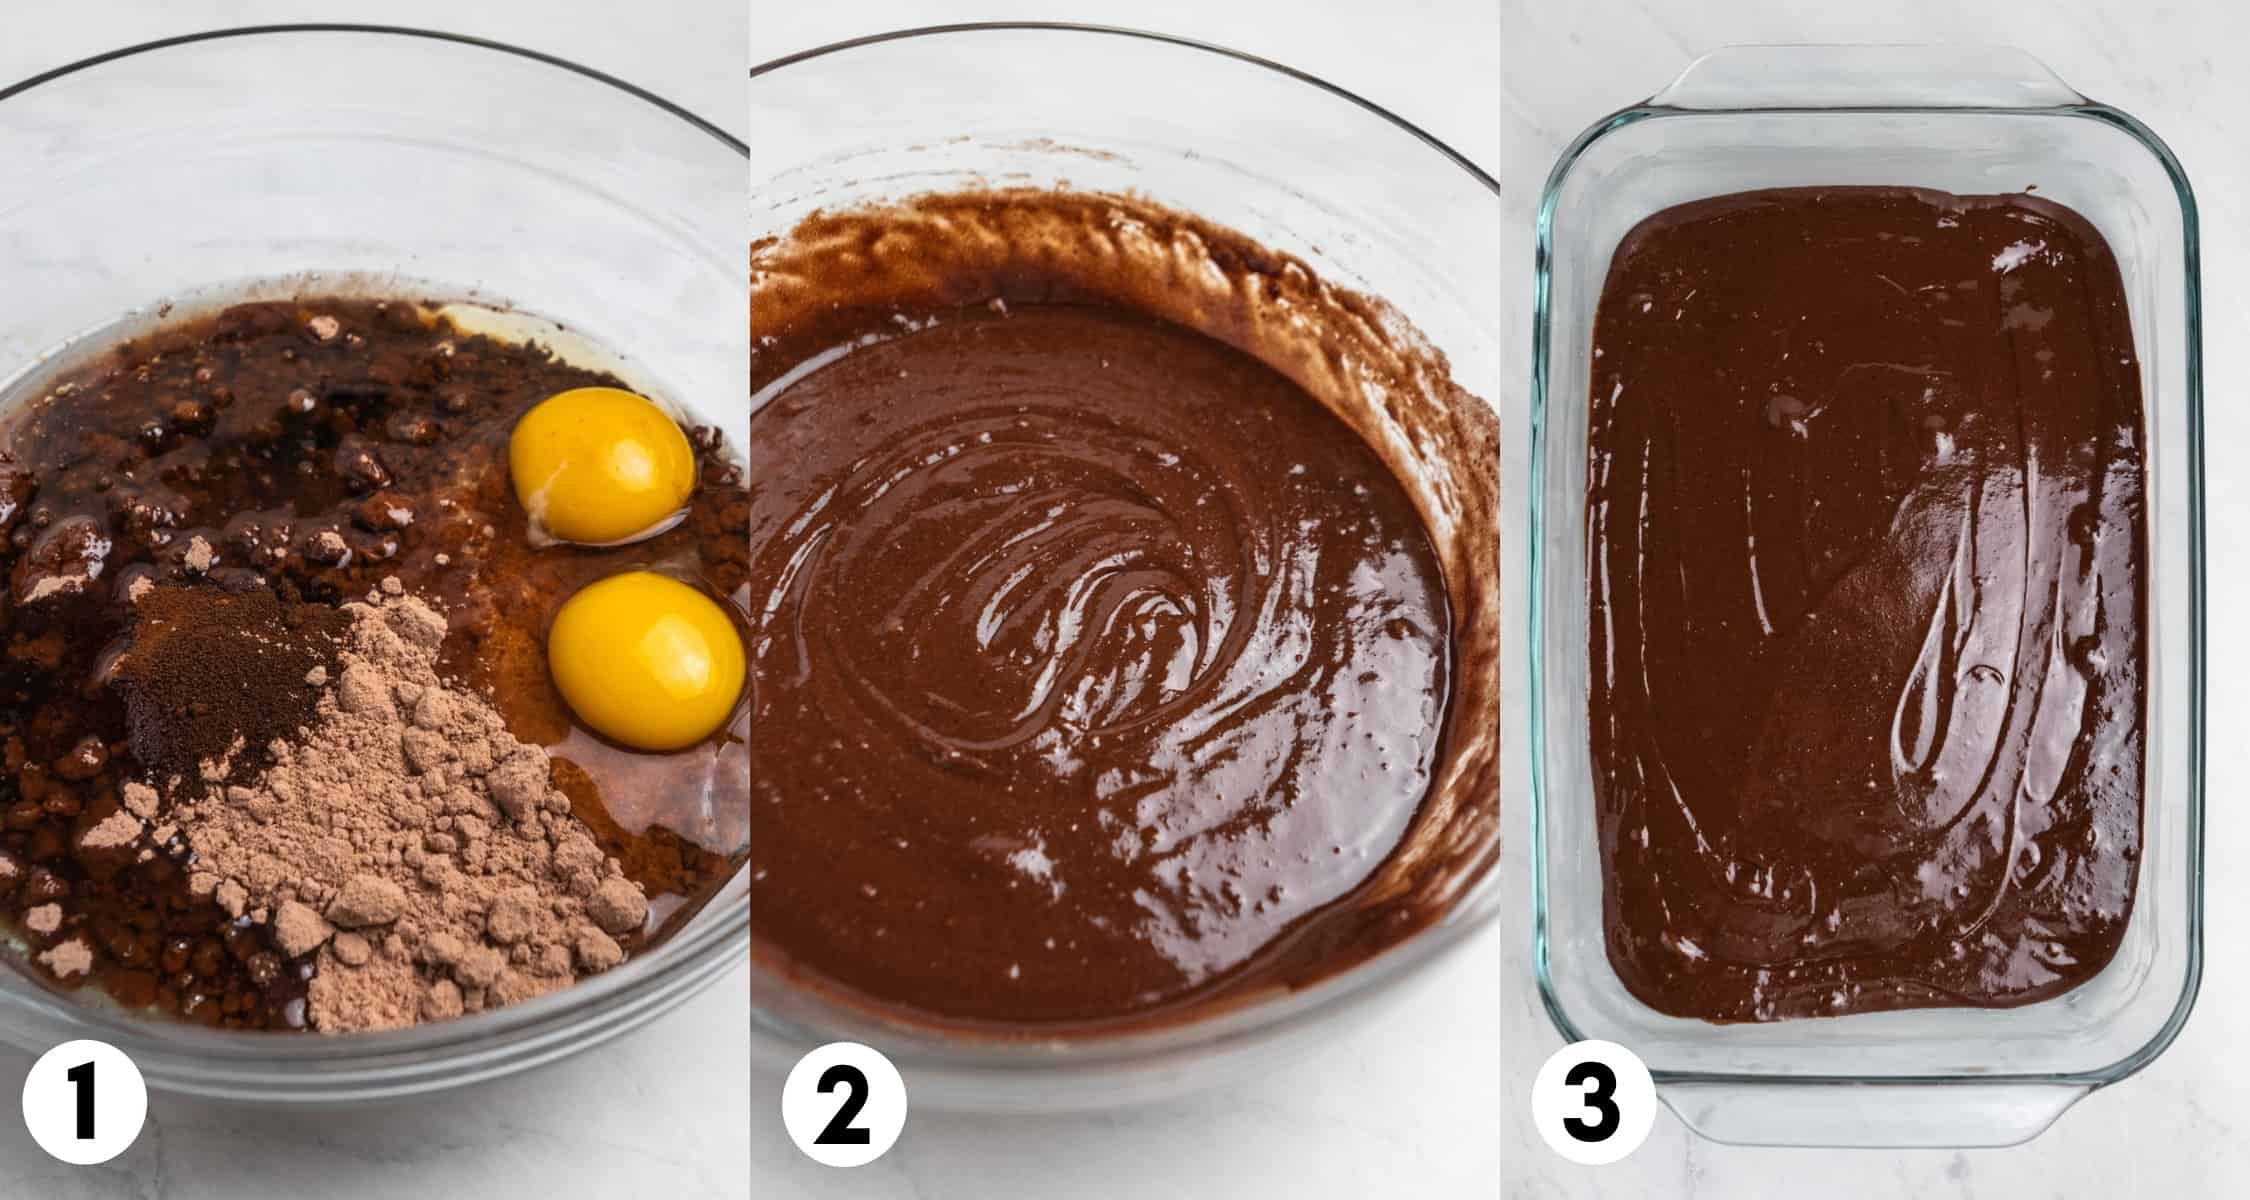 Eggs, oil and brownie mix in mixing bowl and then spread out in baking pan.